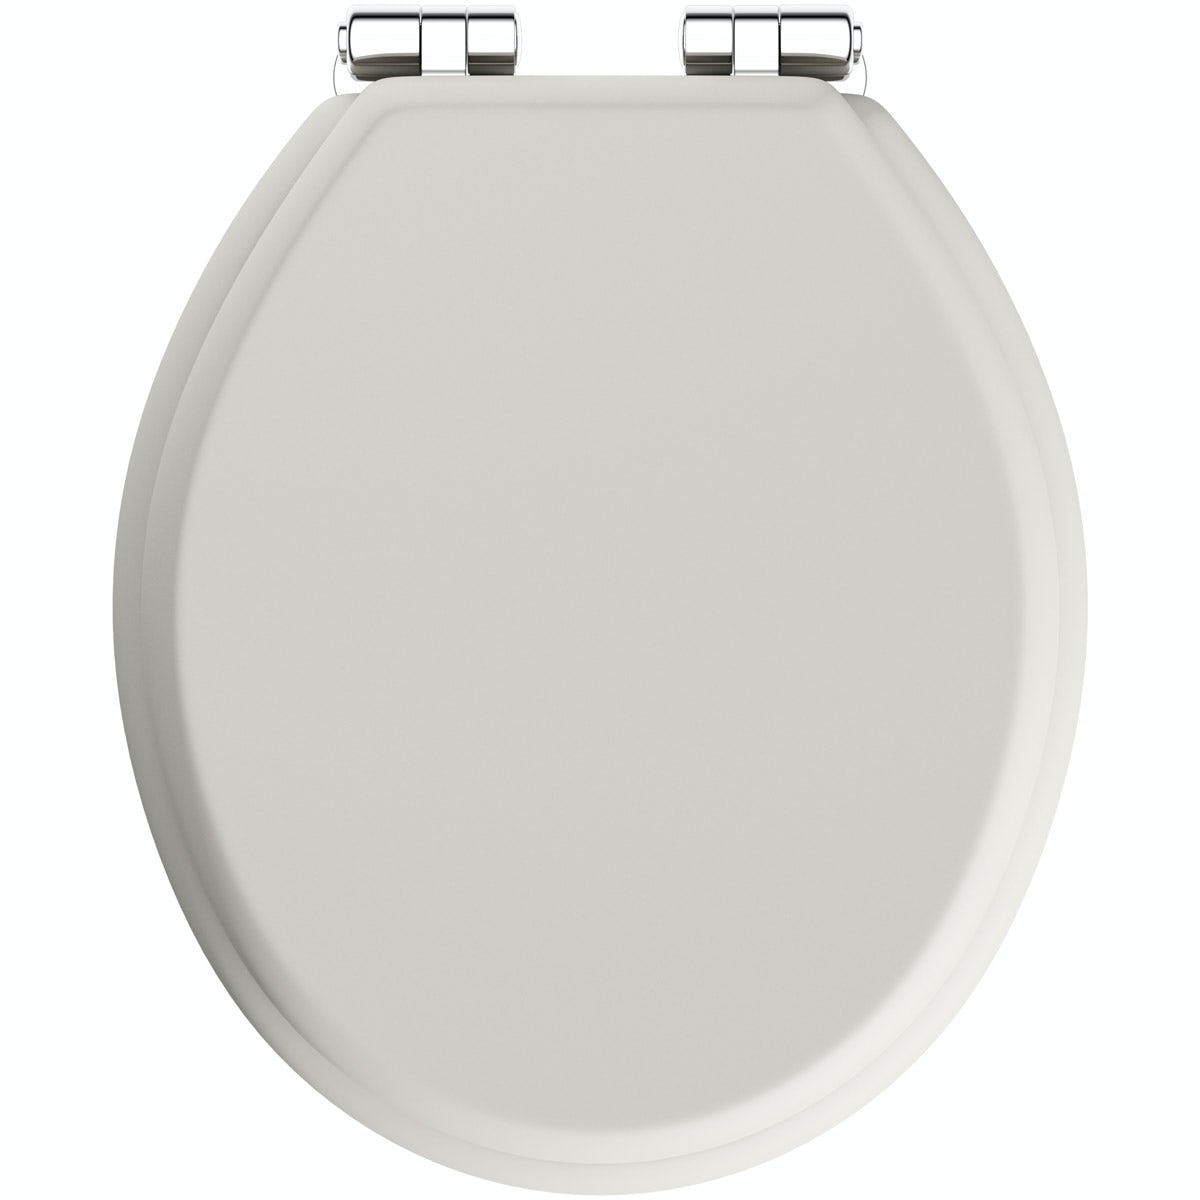 The Bath Co. traditional Camberley ivory engineered wood toilet seat with top fixing soft close hinge